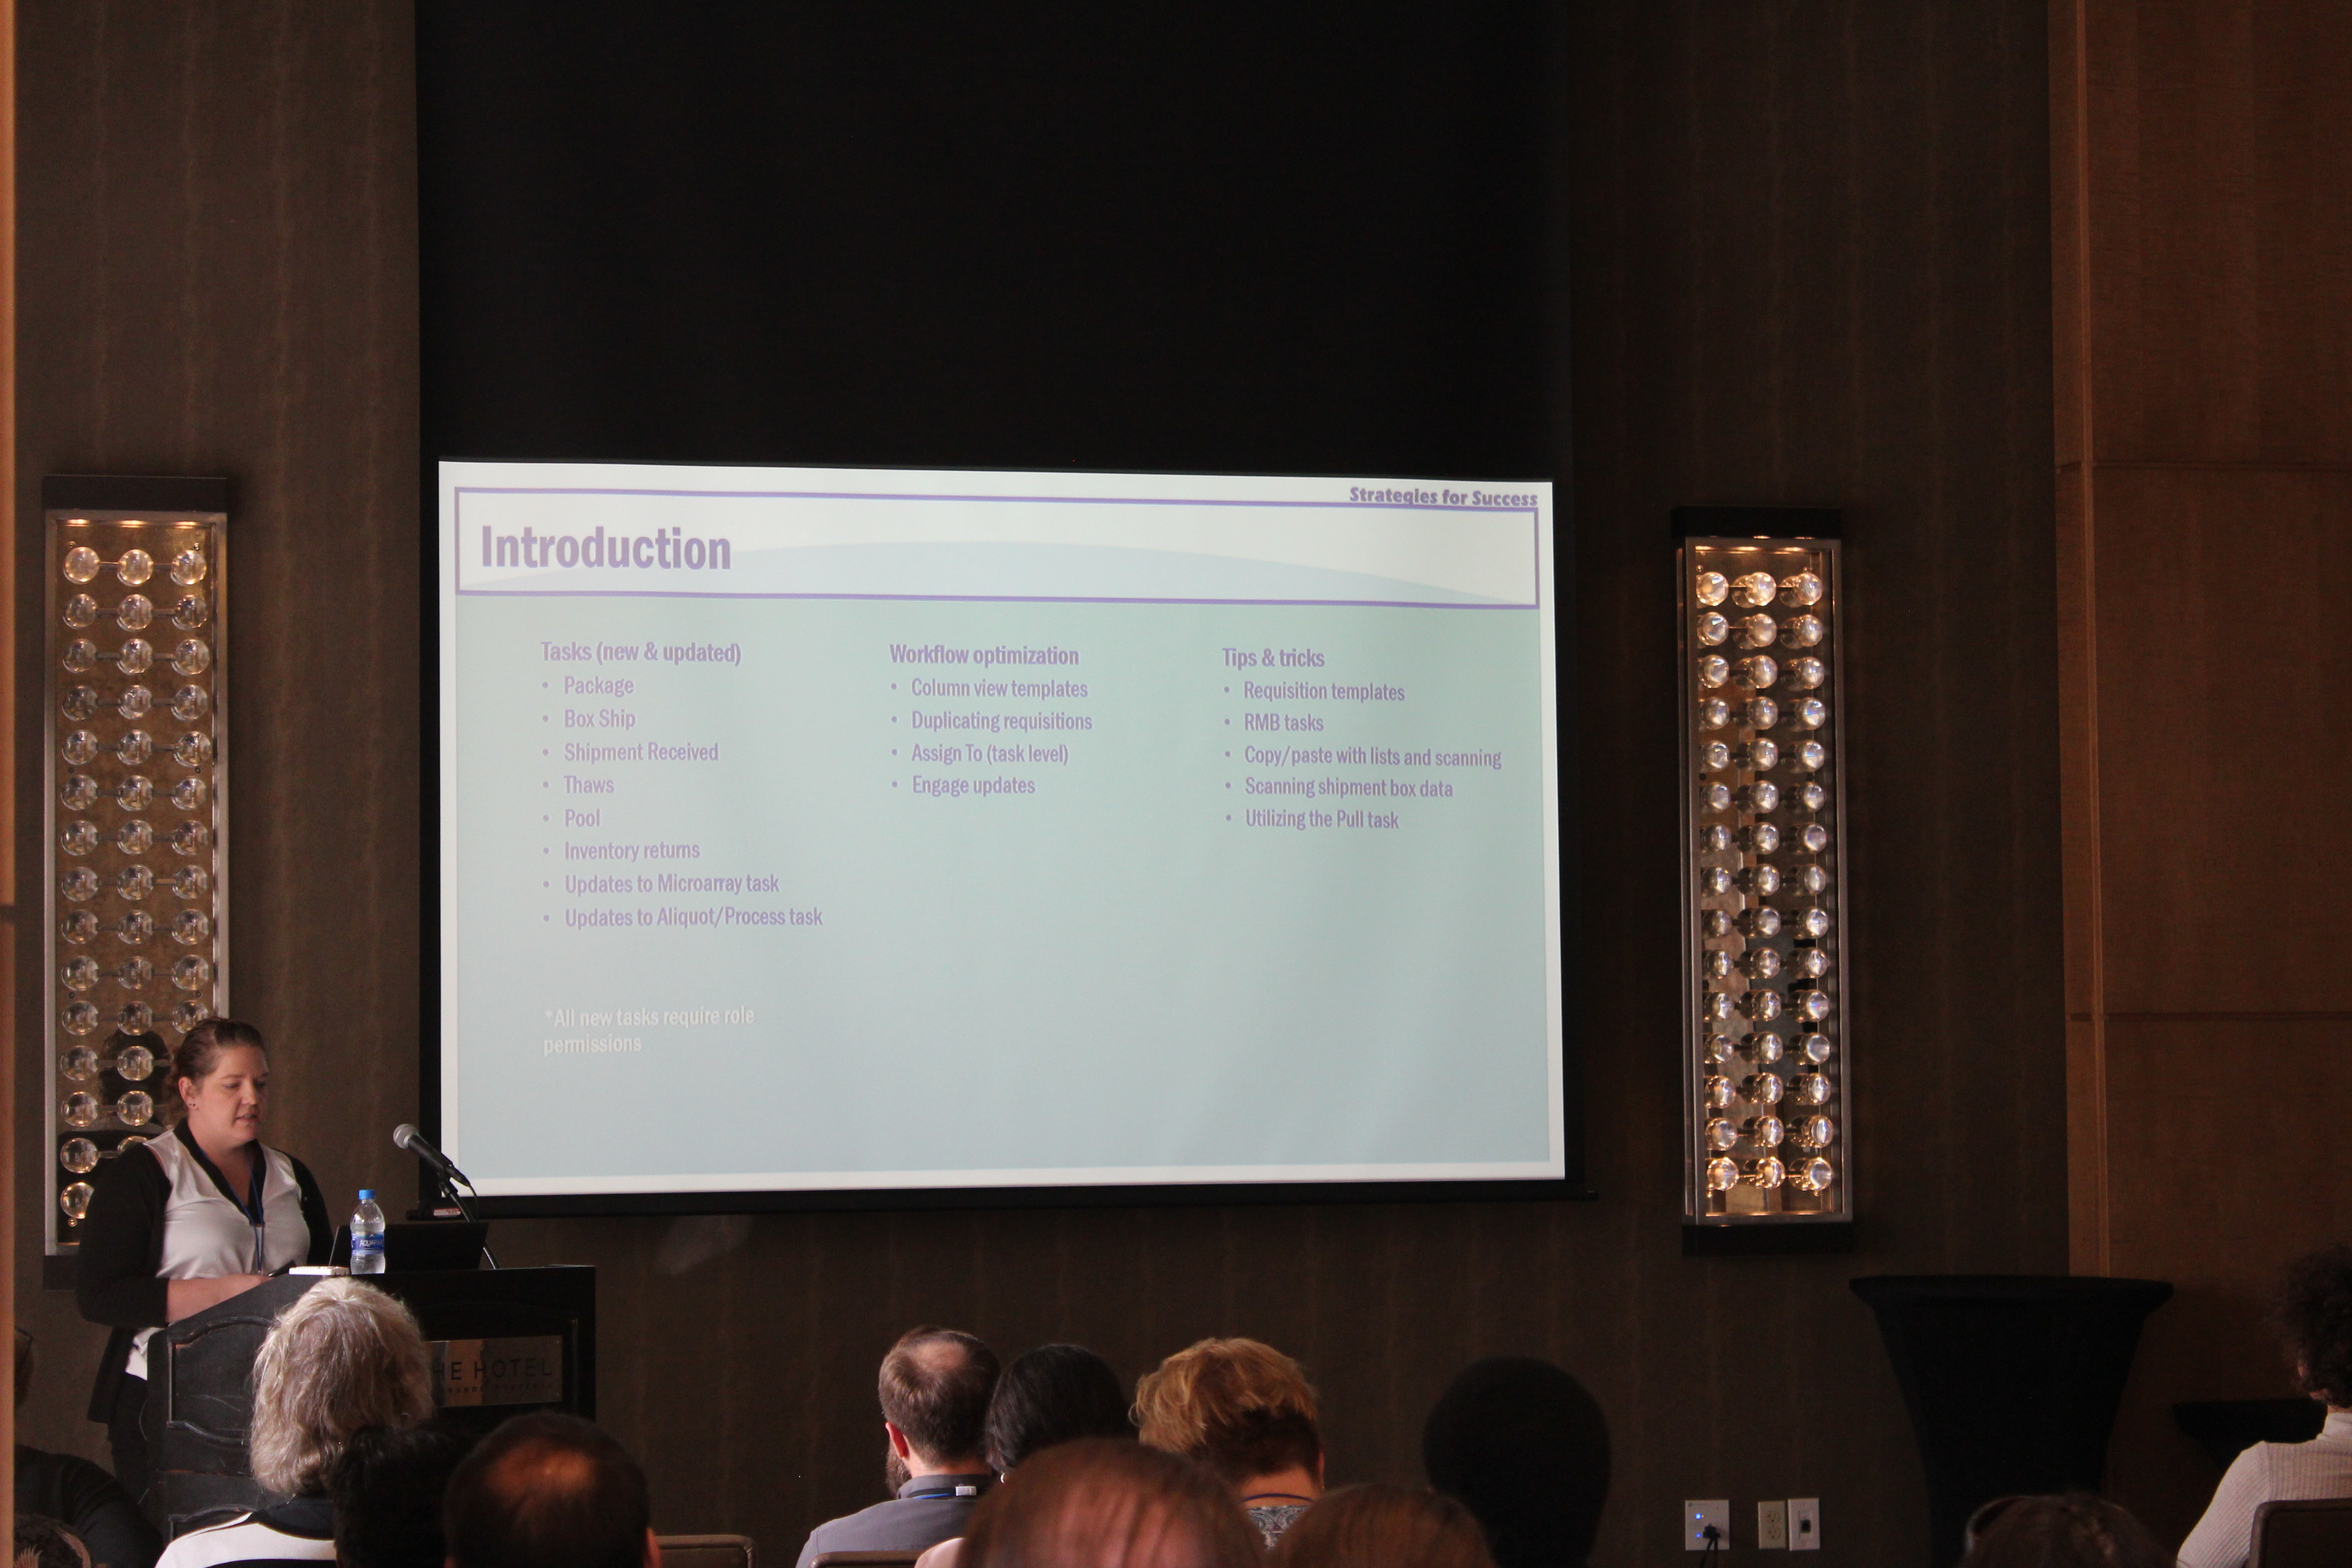 What's new in Requisitions presentation